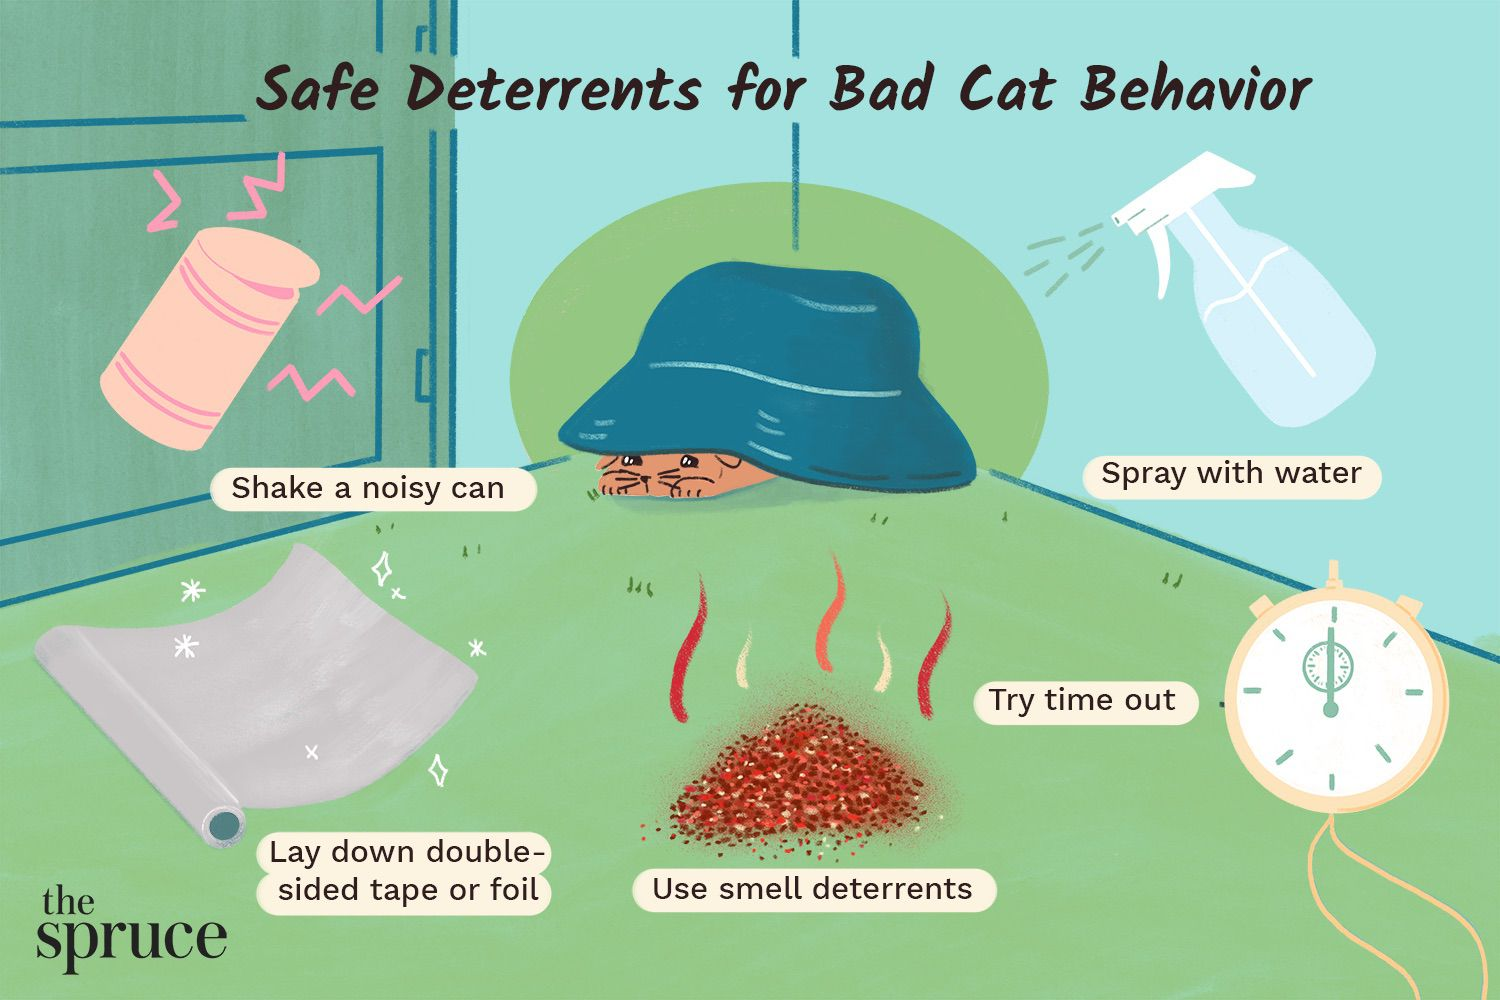 An illustration featuring 5 ways to deter bad cat behavior, like shaking a noisy can or spraying with water.